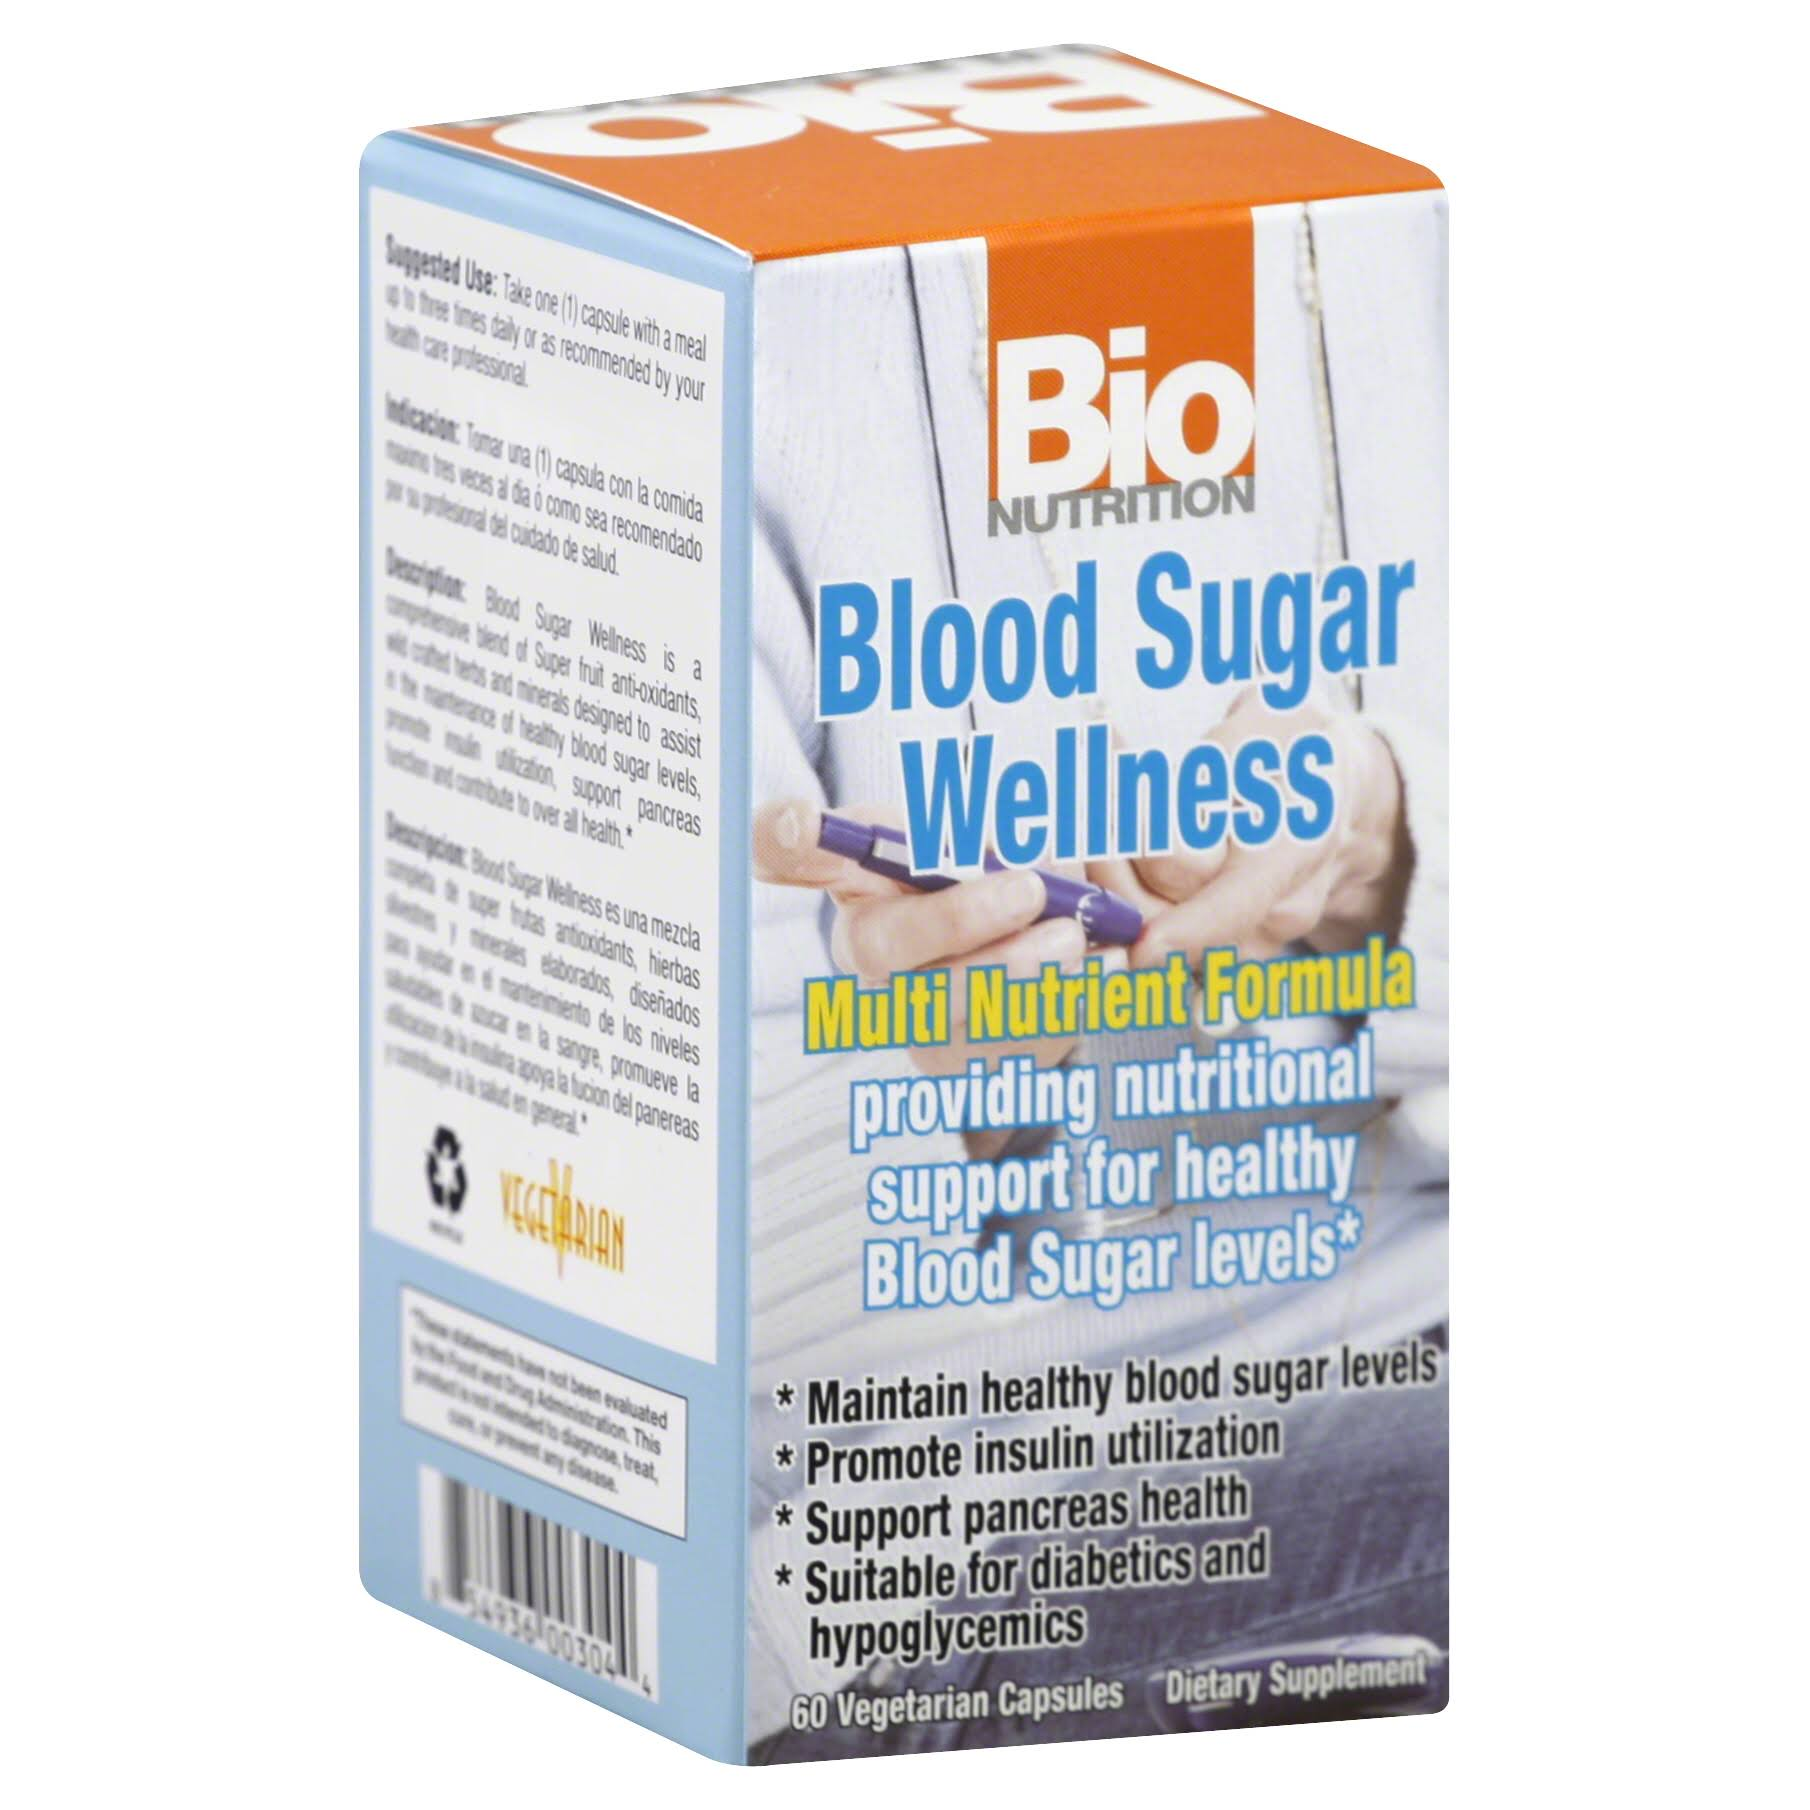 Bio Nutrition Blood Sugar Wellness Supplement - 60ct